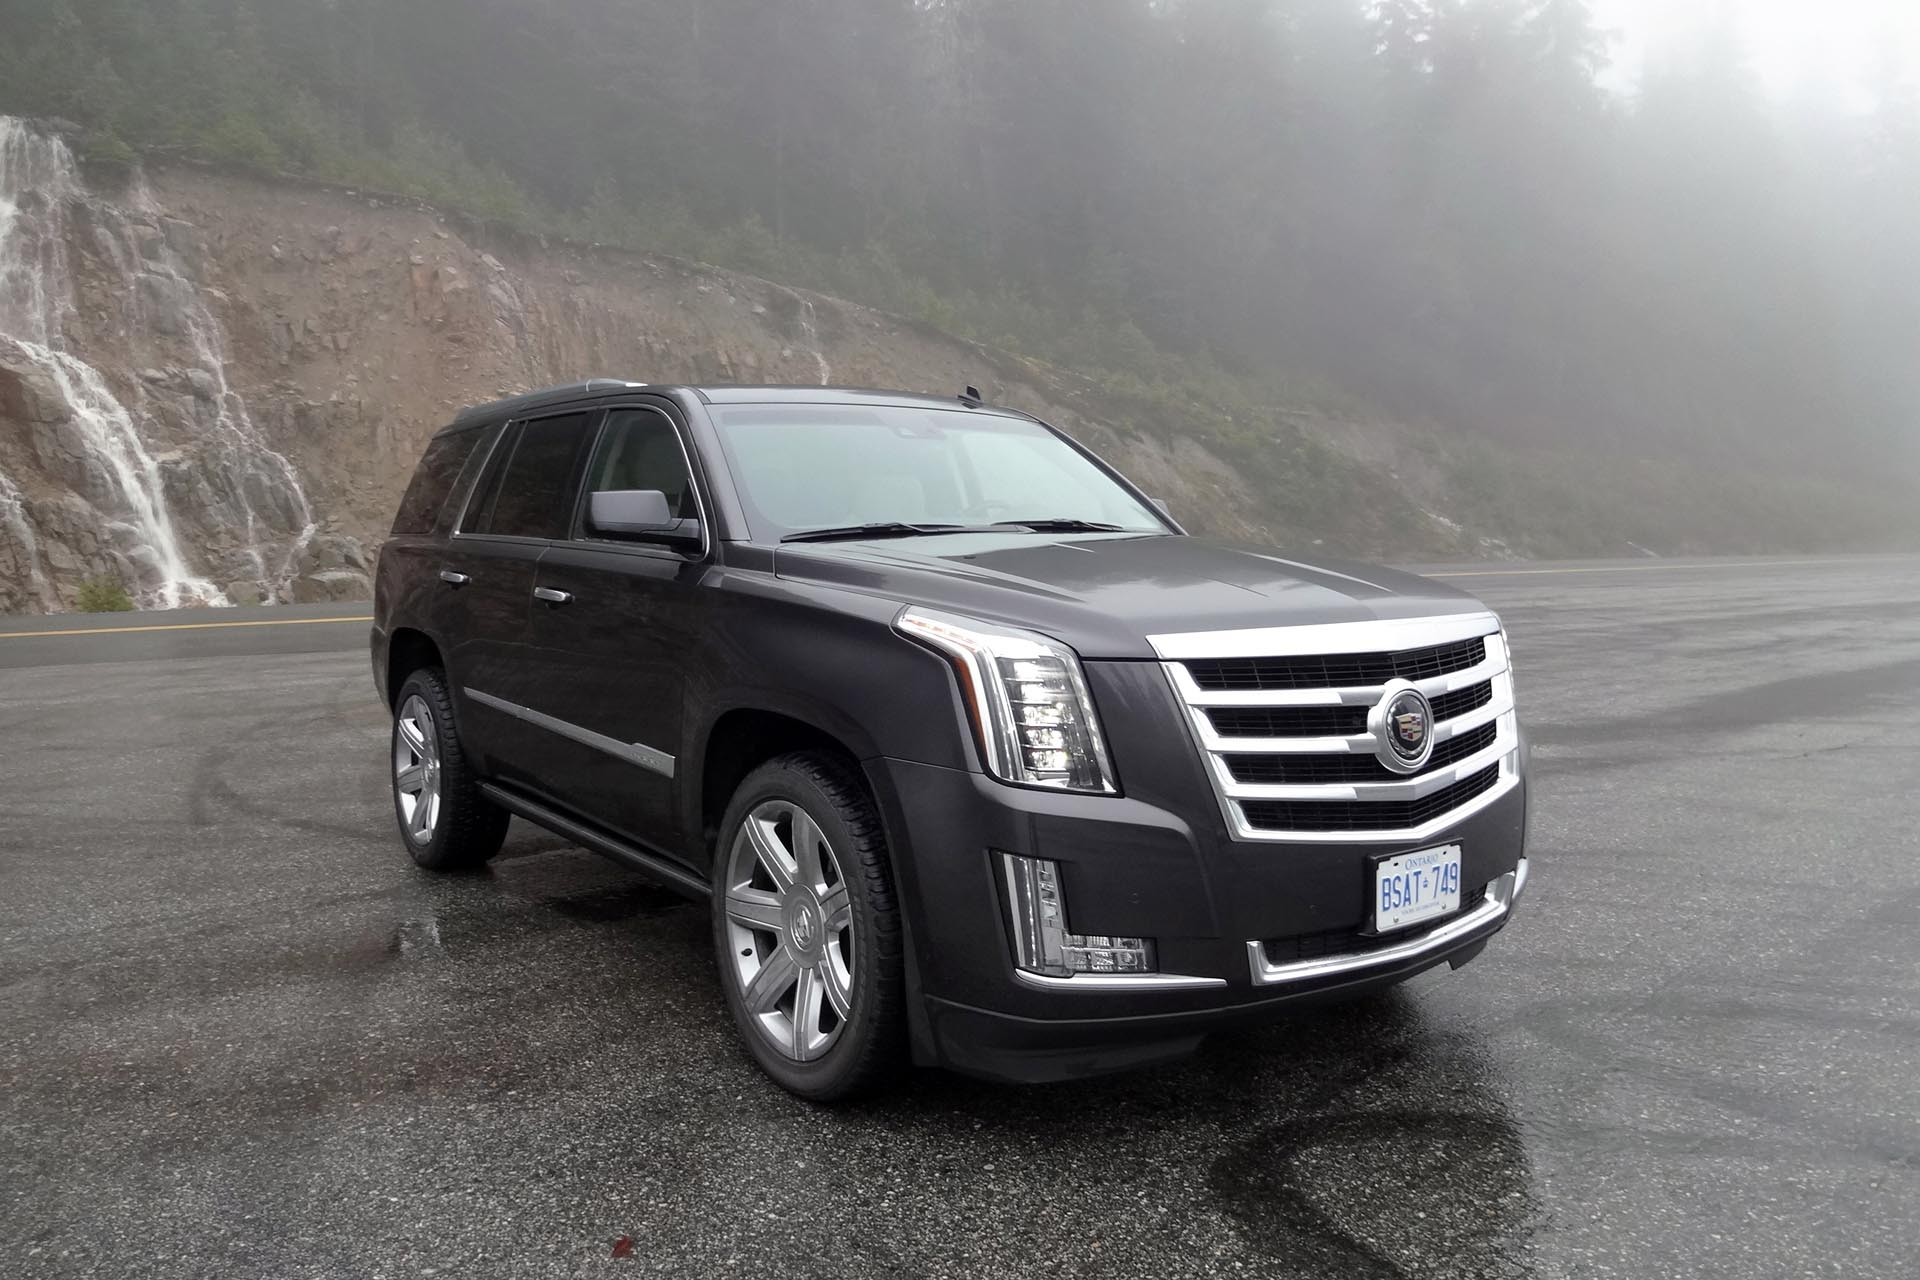 It's easy to deal with a situation if you just don't care, and the Cadillac Escalade makes it easy not to care about traffic. You're bigger than everyone else. You sit way up high with a commanding view. You've got all-wheel drive in case the weather turns nasty. You've got available adaptive cruise control and other driving aids to ease the burden of navigating dense traffic. You've got comfortable leather seating and a superb-sounding infotainment system with all the bells and whistles. Yep, provided you can afford the steep price of entry and the hefty ongoing fuel bills, the Escalade does a fine job of insulating you from the slings and arrows of the daily commute.